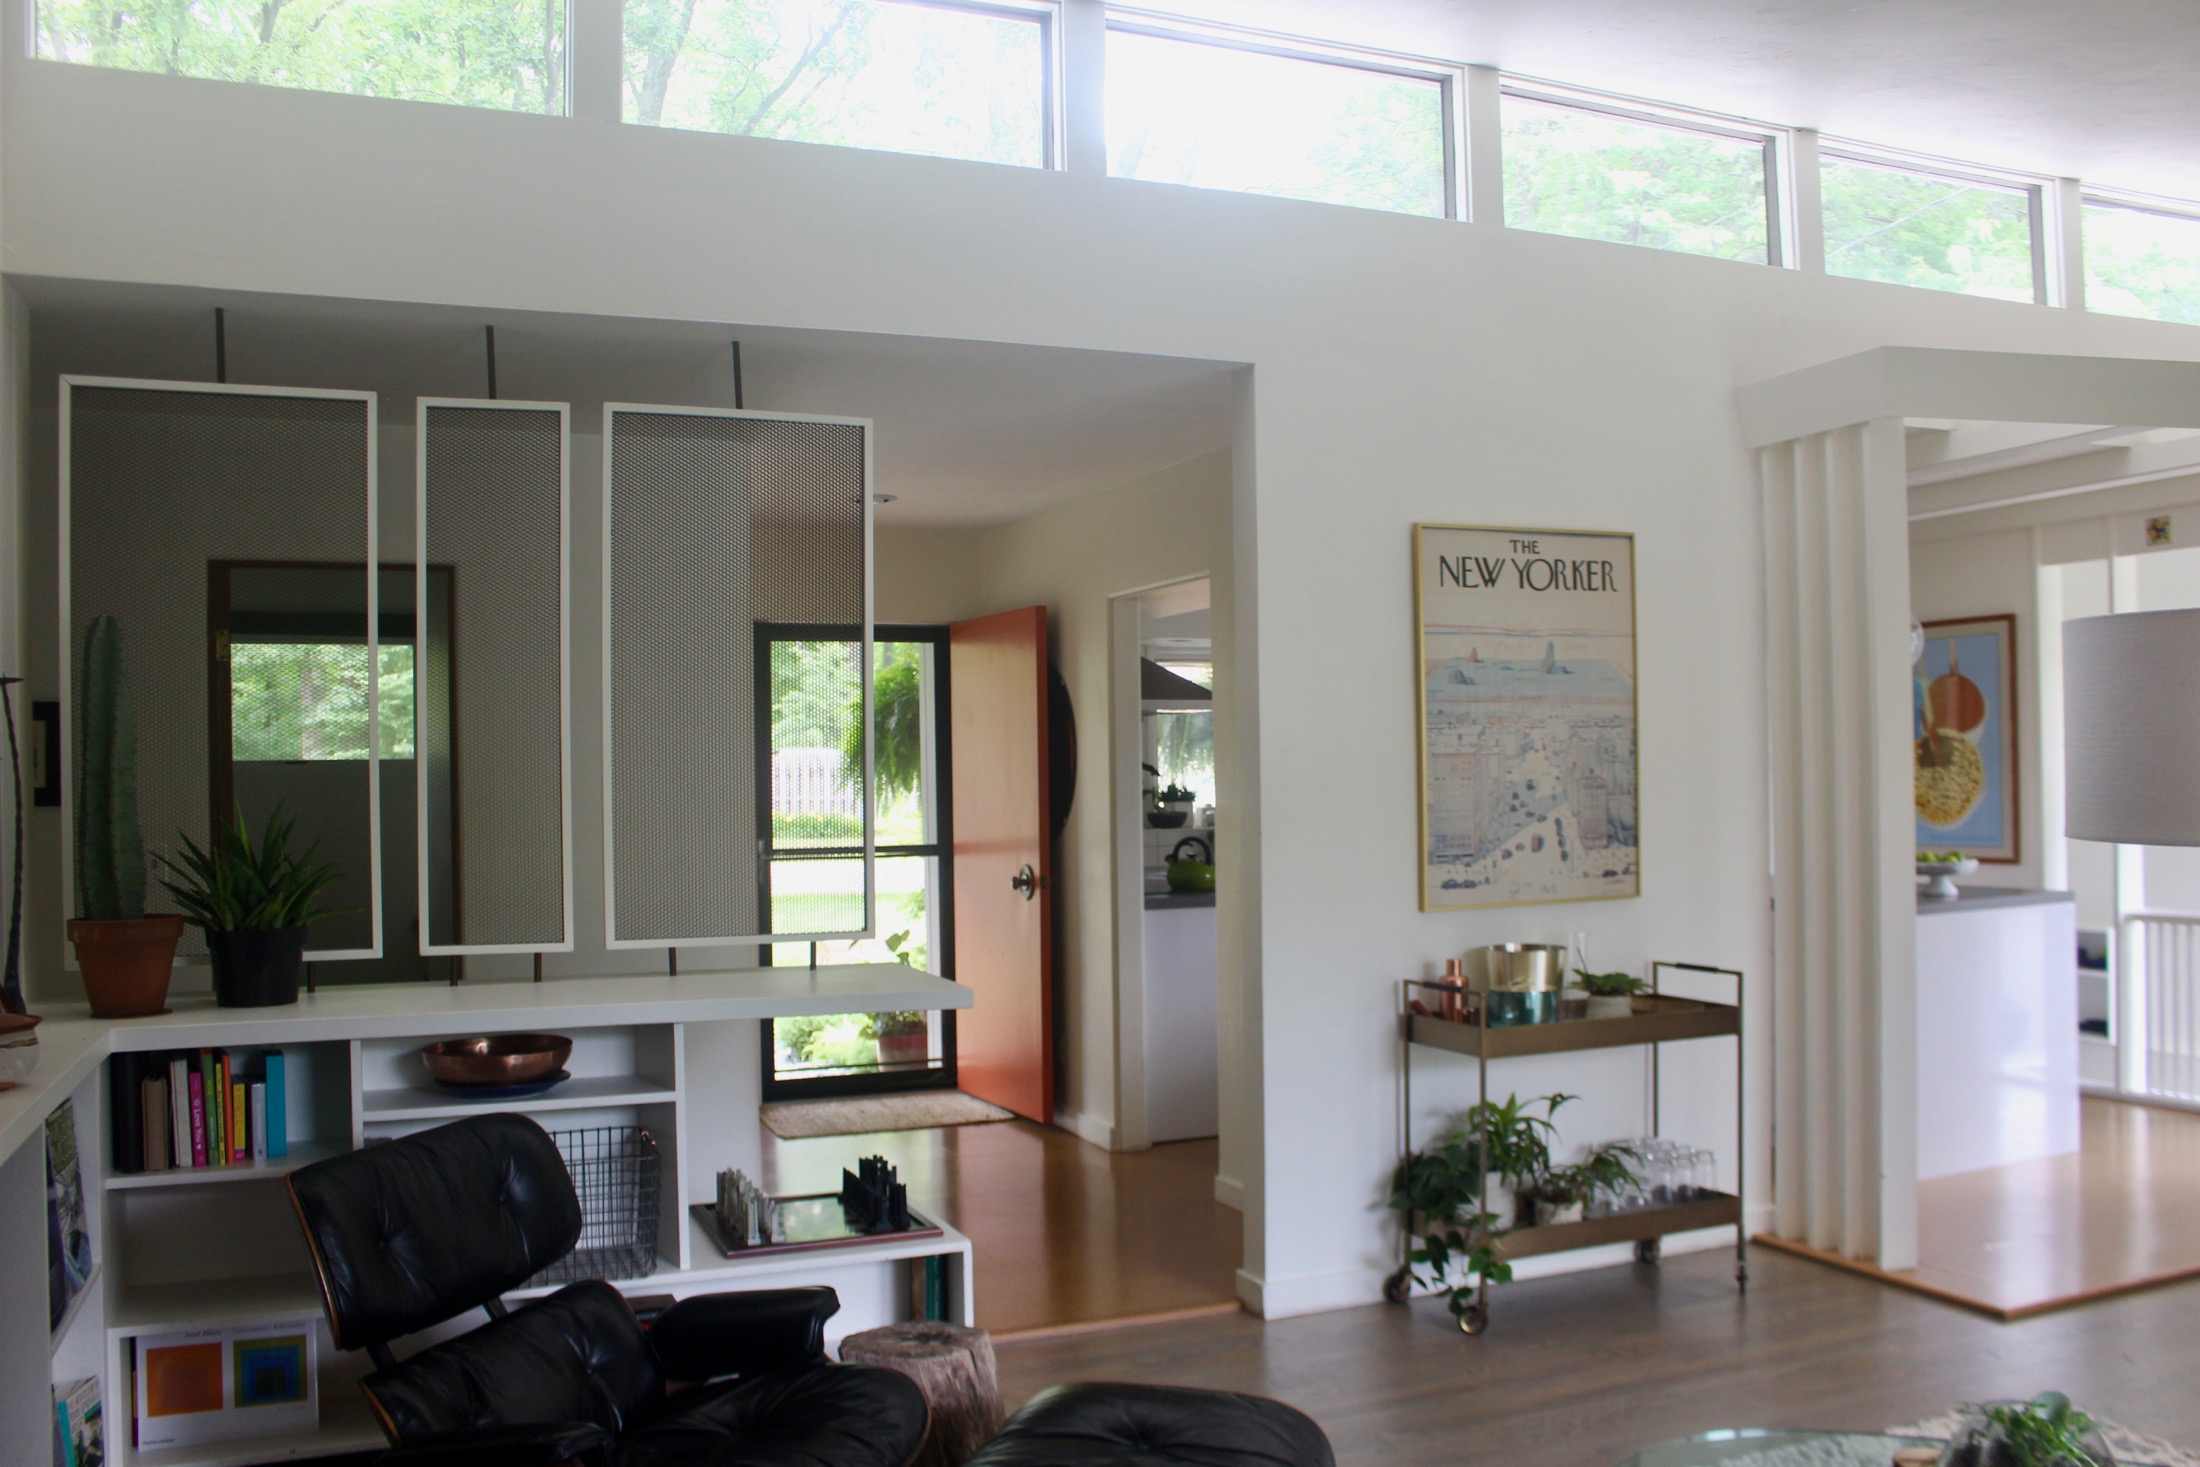 View from the living room of the clerestory windows and front entry.